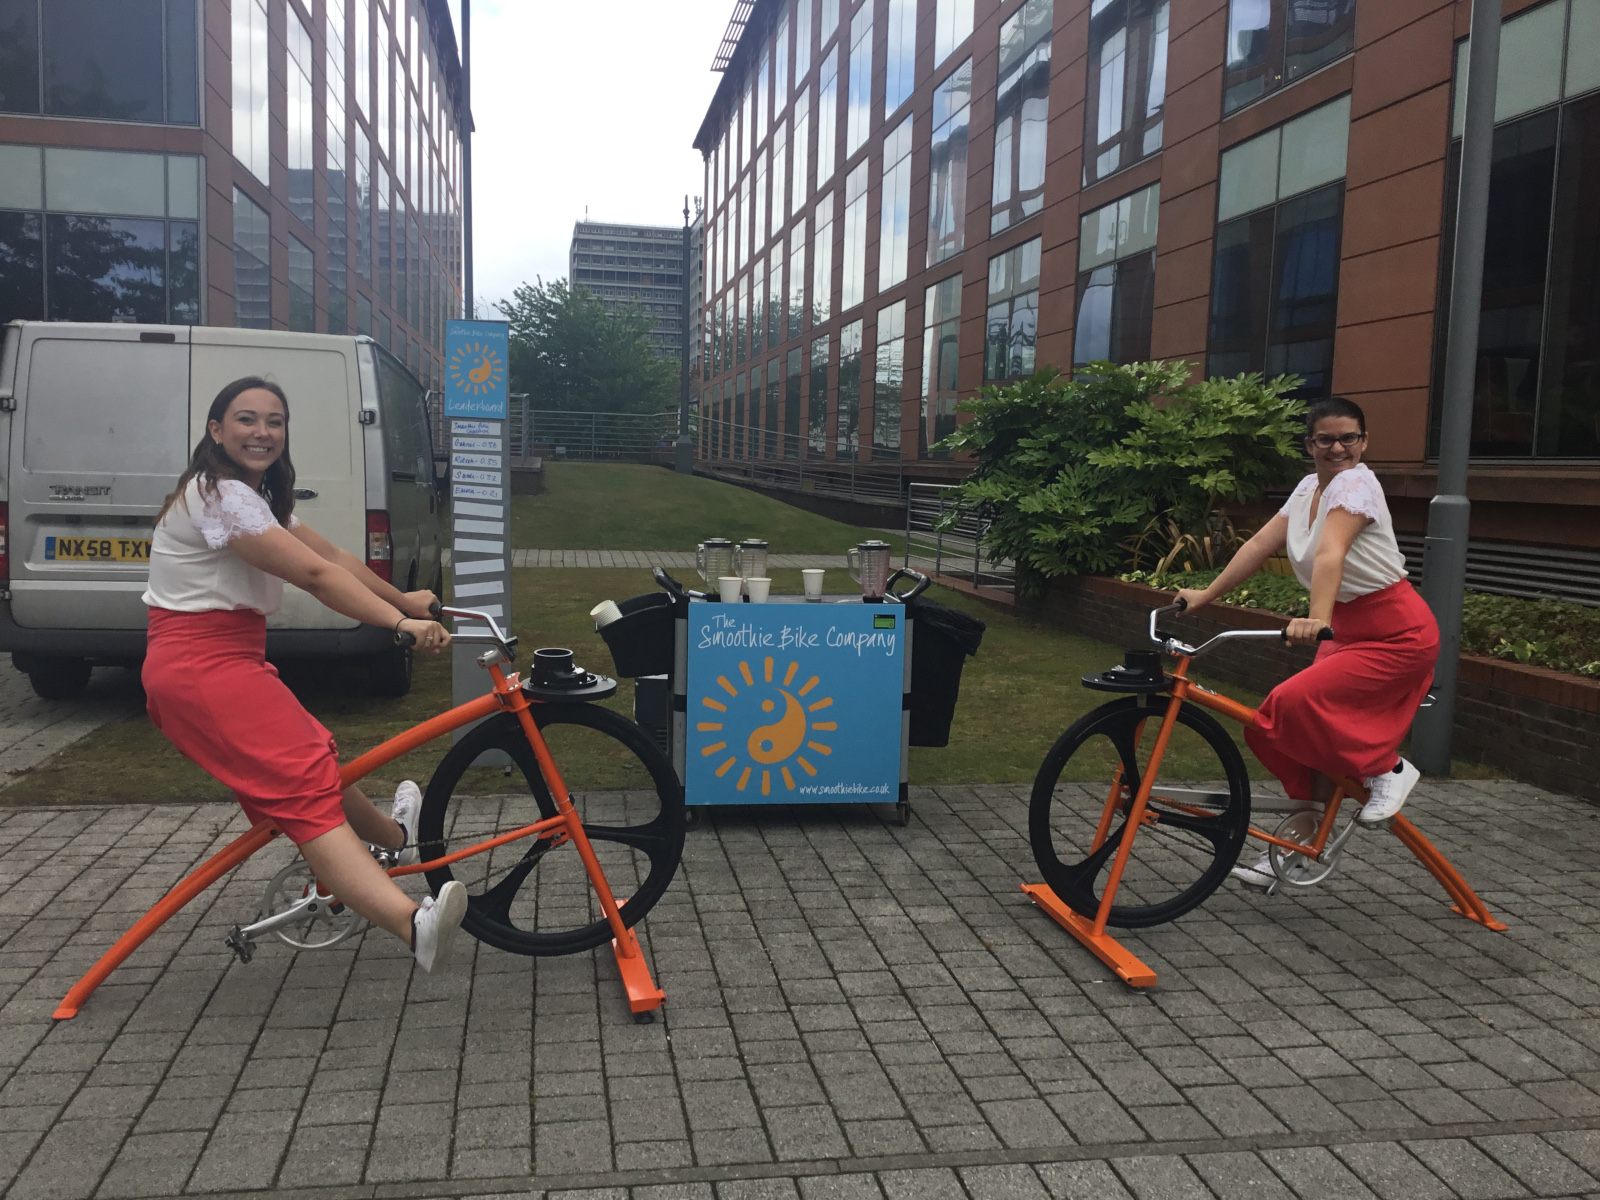 Pedal power provides smooth perfection at Waterfront in Hammersmith